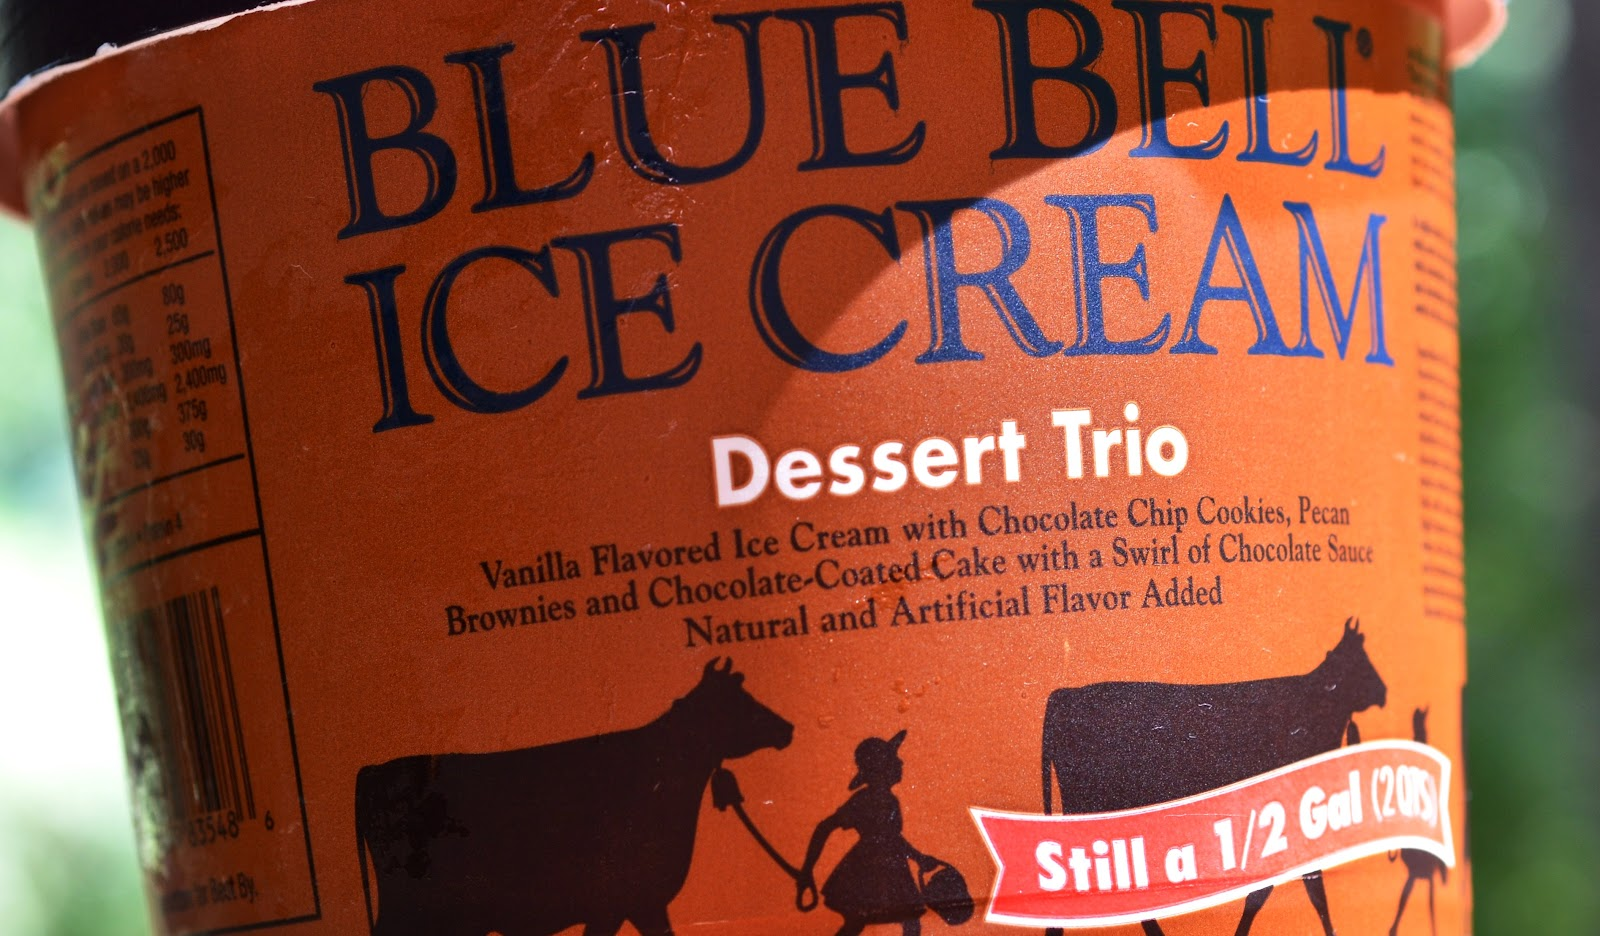 food and ice cream recipes REVIEW Blue Bell Dessert Trio